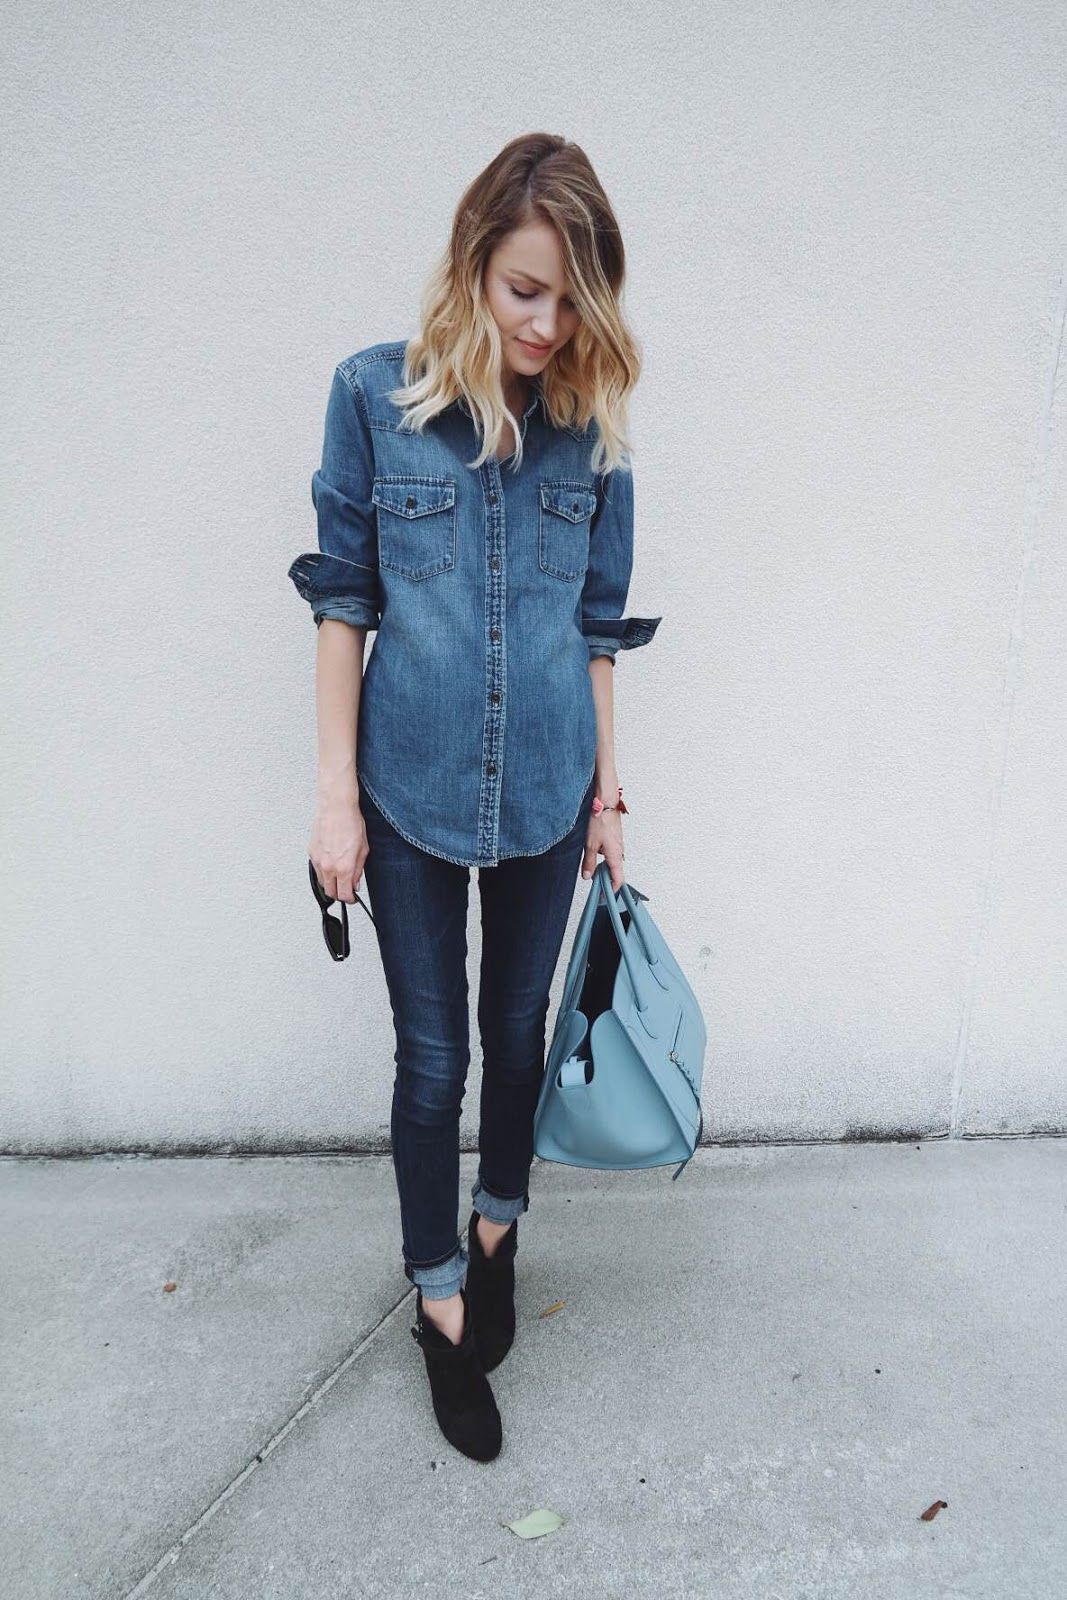 Lady wearing denim chambray top with skinny jeans